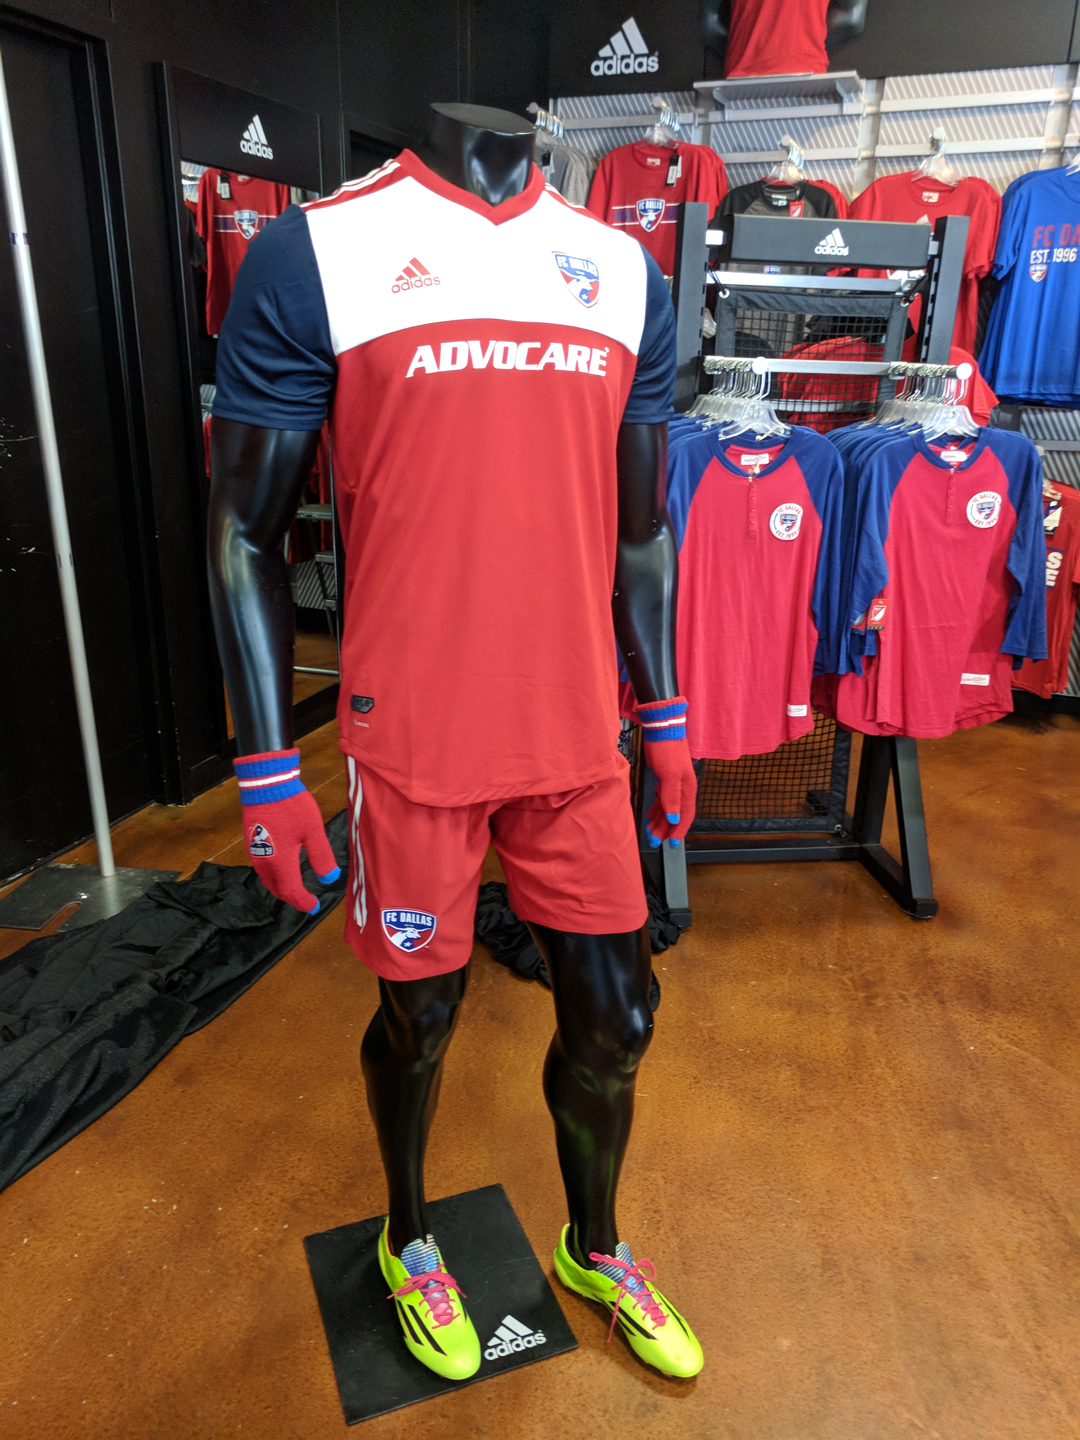 430d17c44 Soccer: Pictures from the FC Dallas 2018 home kit reveal   SportsDay